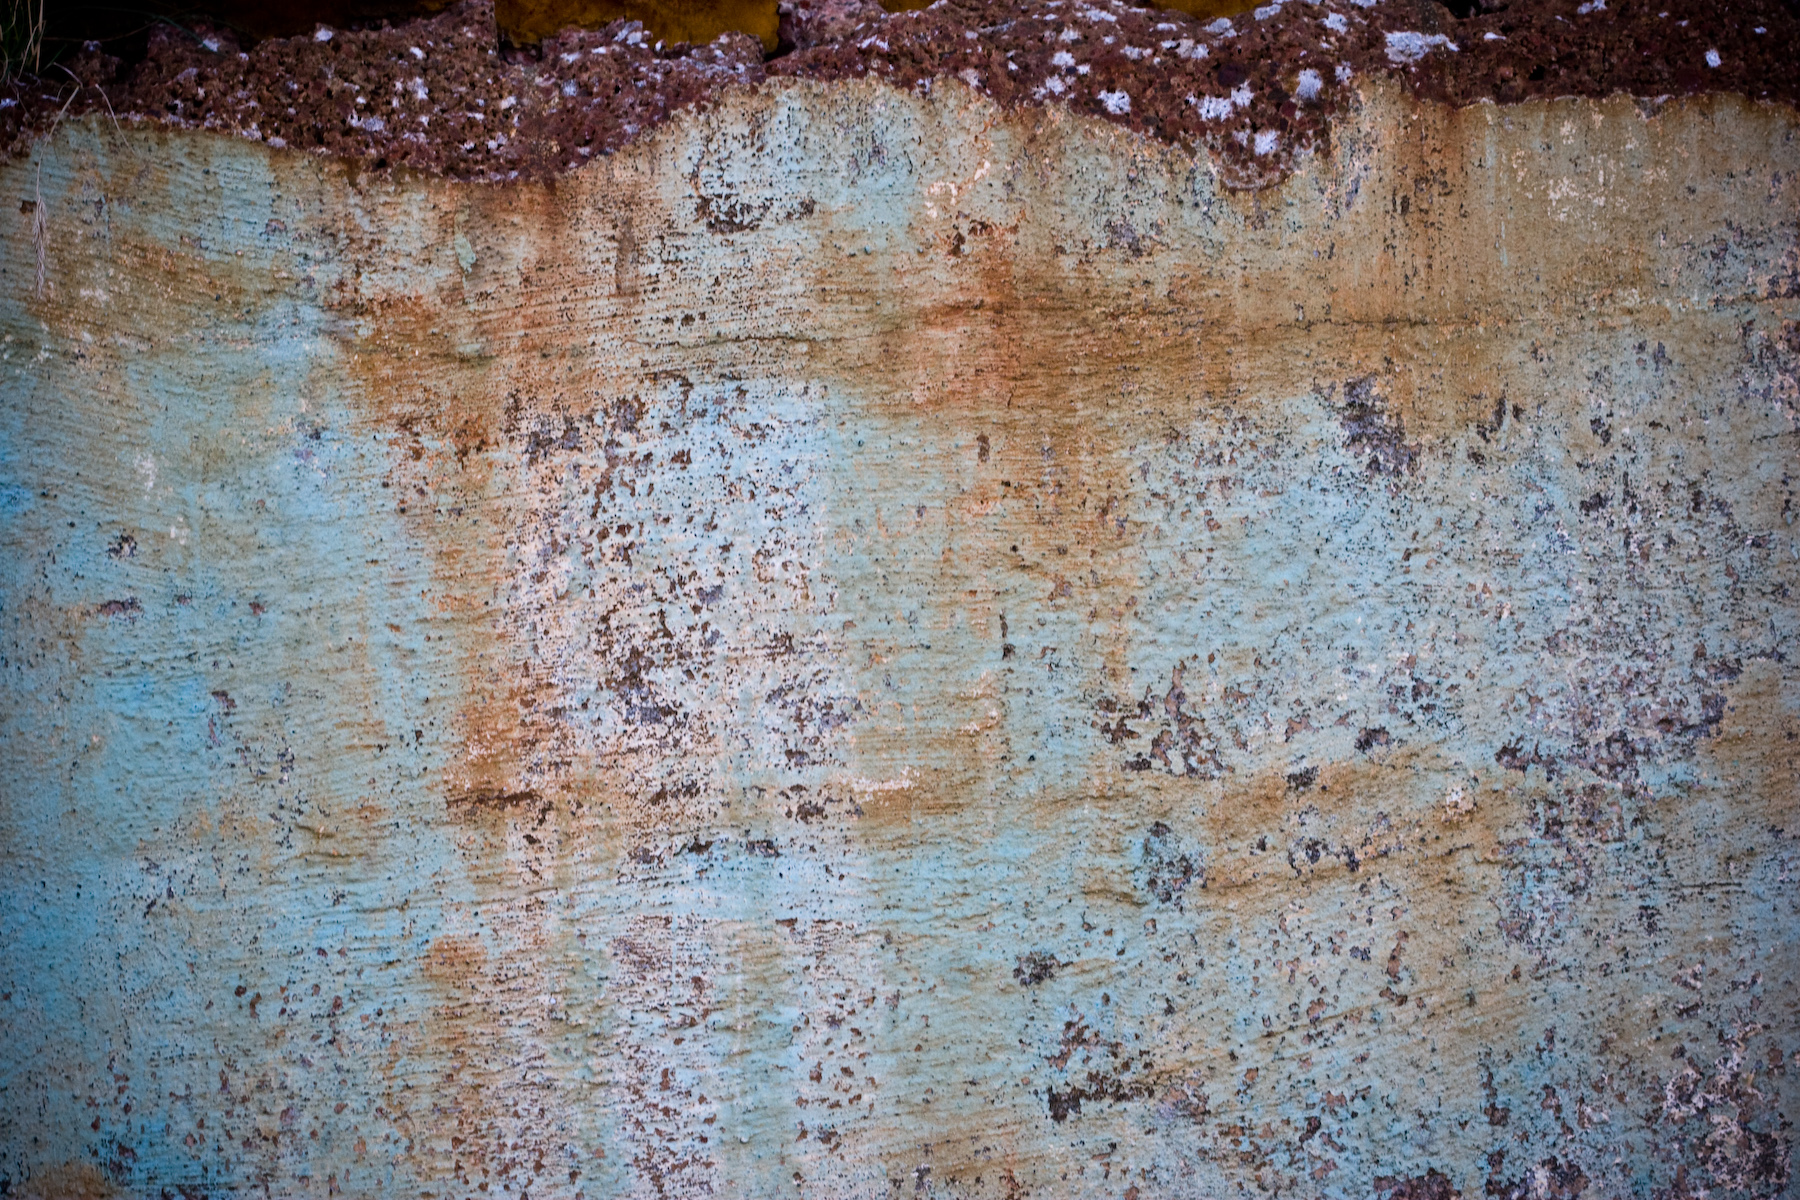 Dirty concrete wall, Cement, Concrete, Dirty, Grunge, HQ Photo